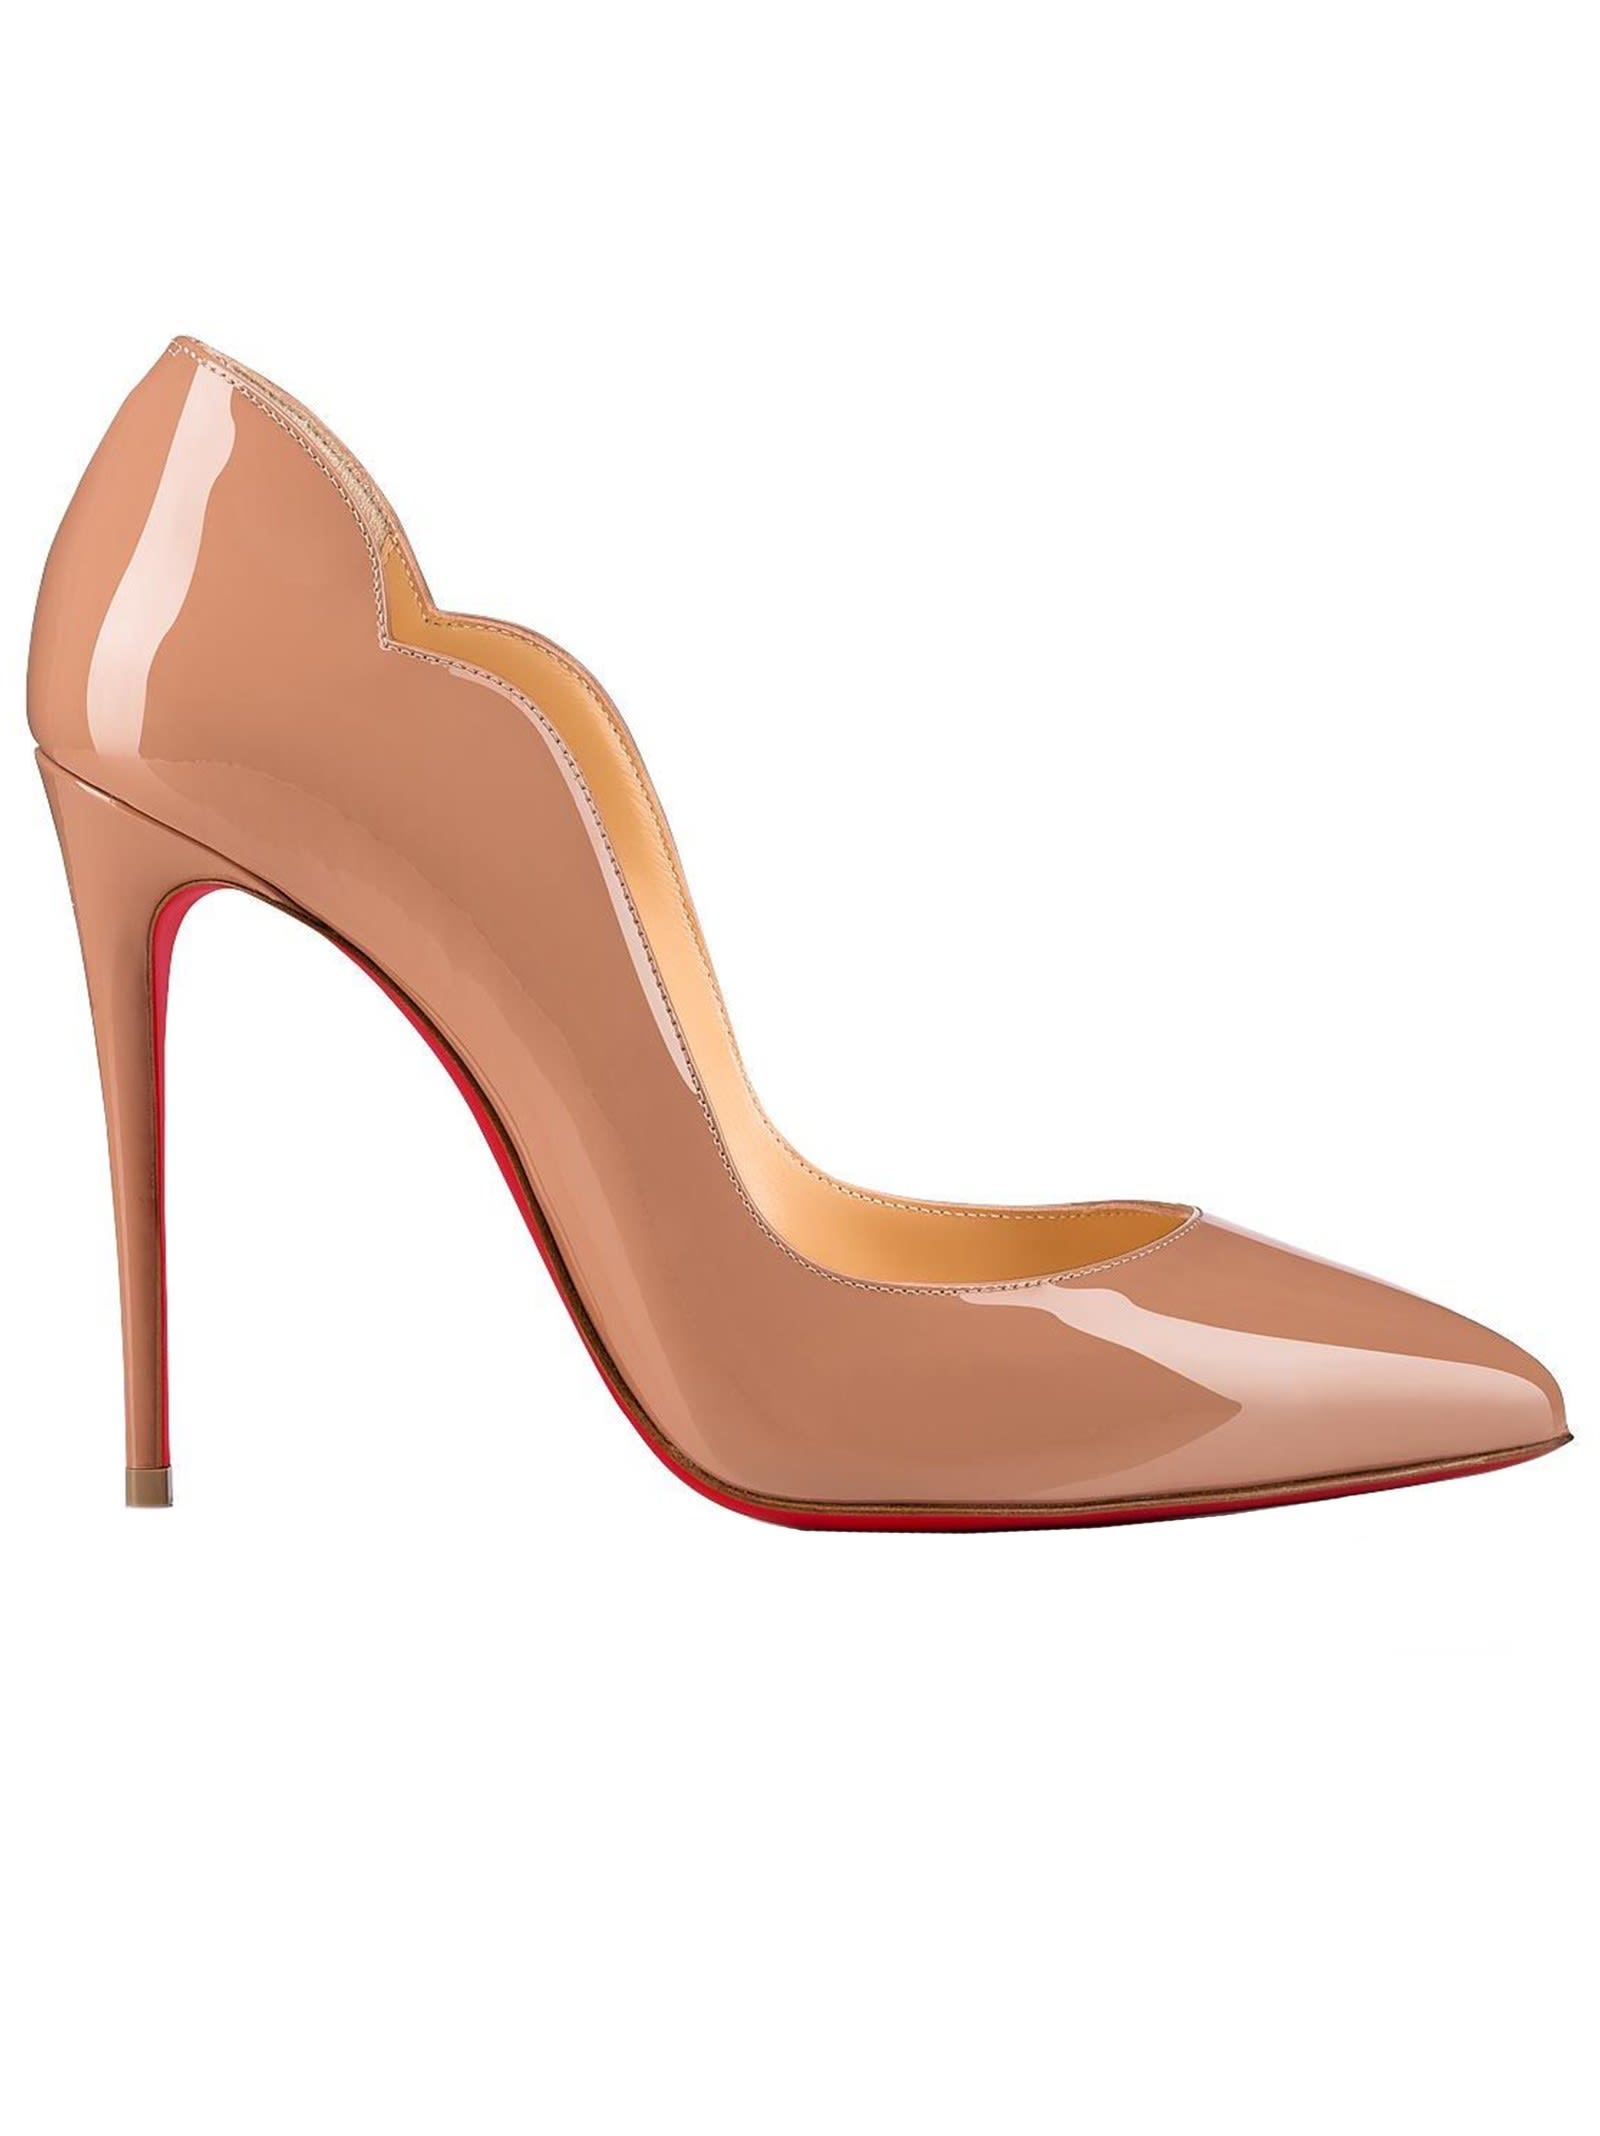 Buy Christian Louboutin Hot Chic 100 Nude Patent Leather Pumps online, shop Christian Louboutin shoes with free shipping